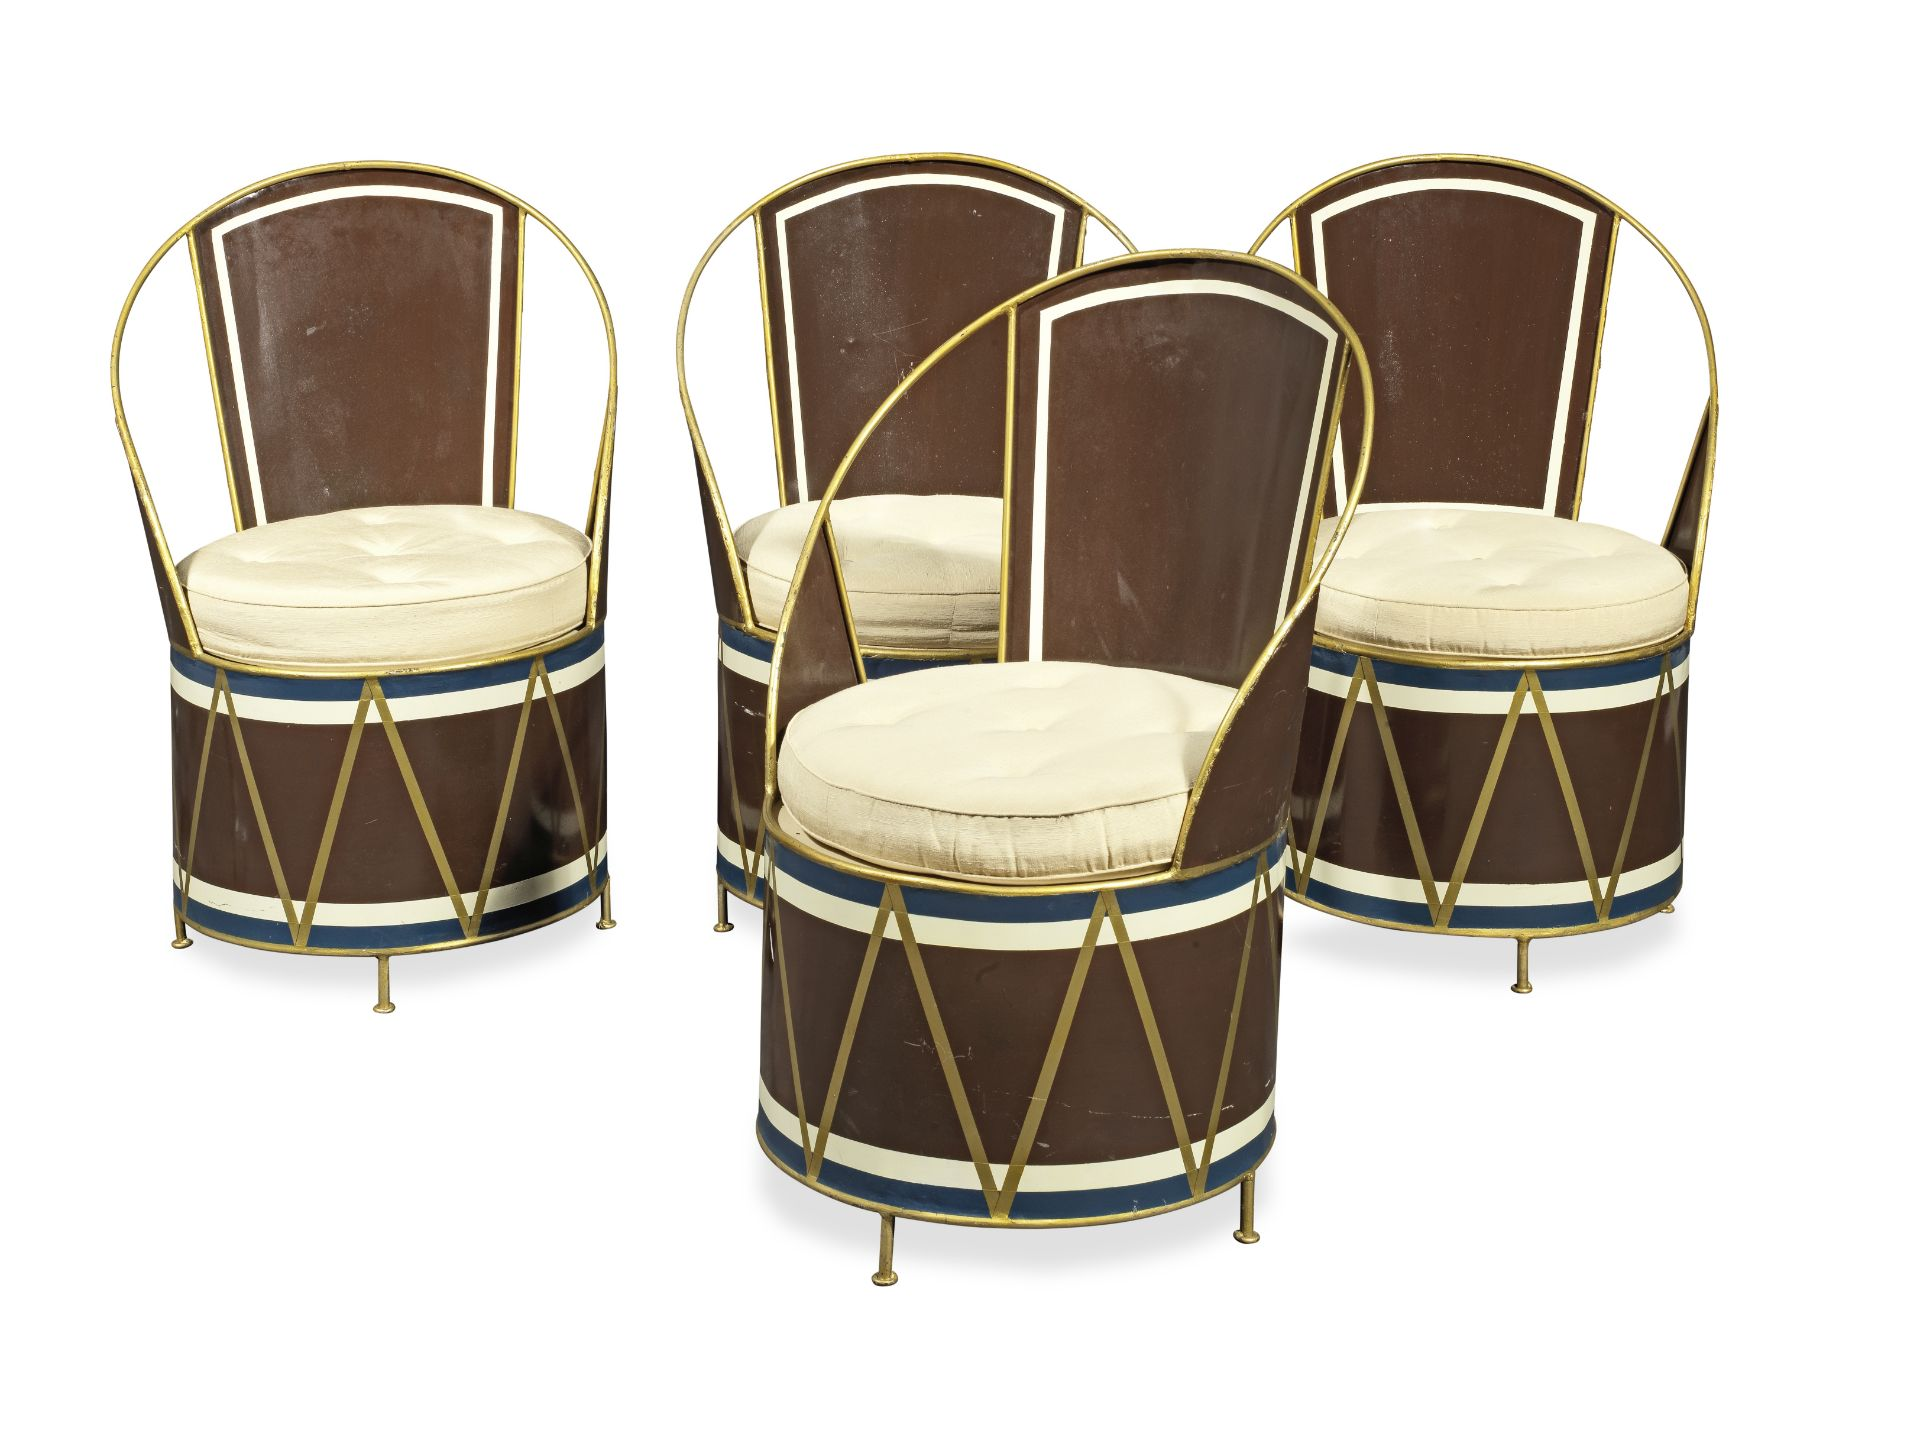 A set of four tole peinte 'drum' chairs after the model by Cecil Beaton (4)